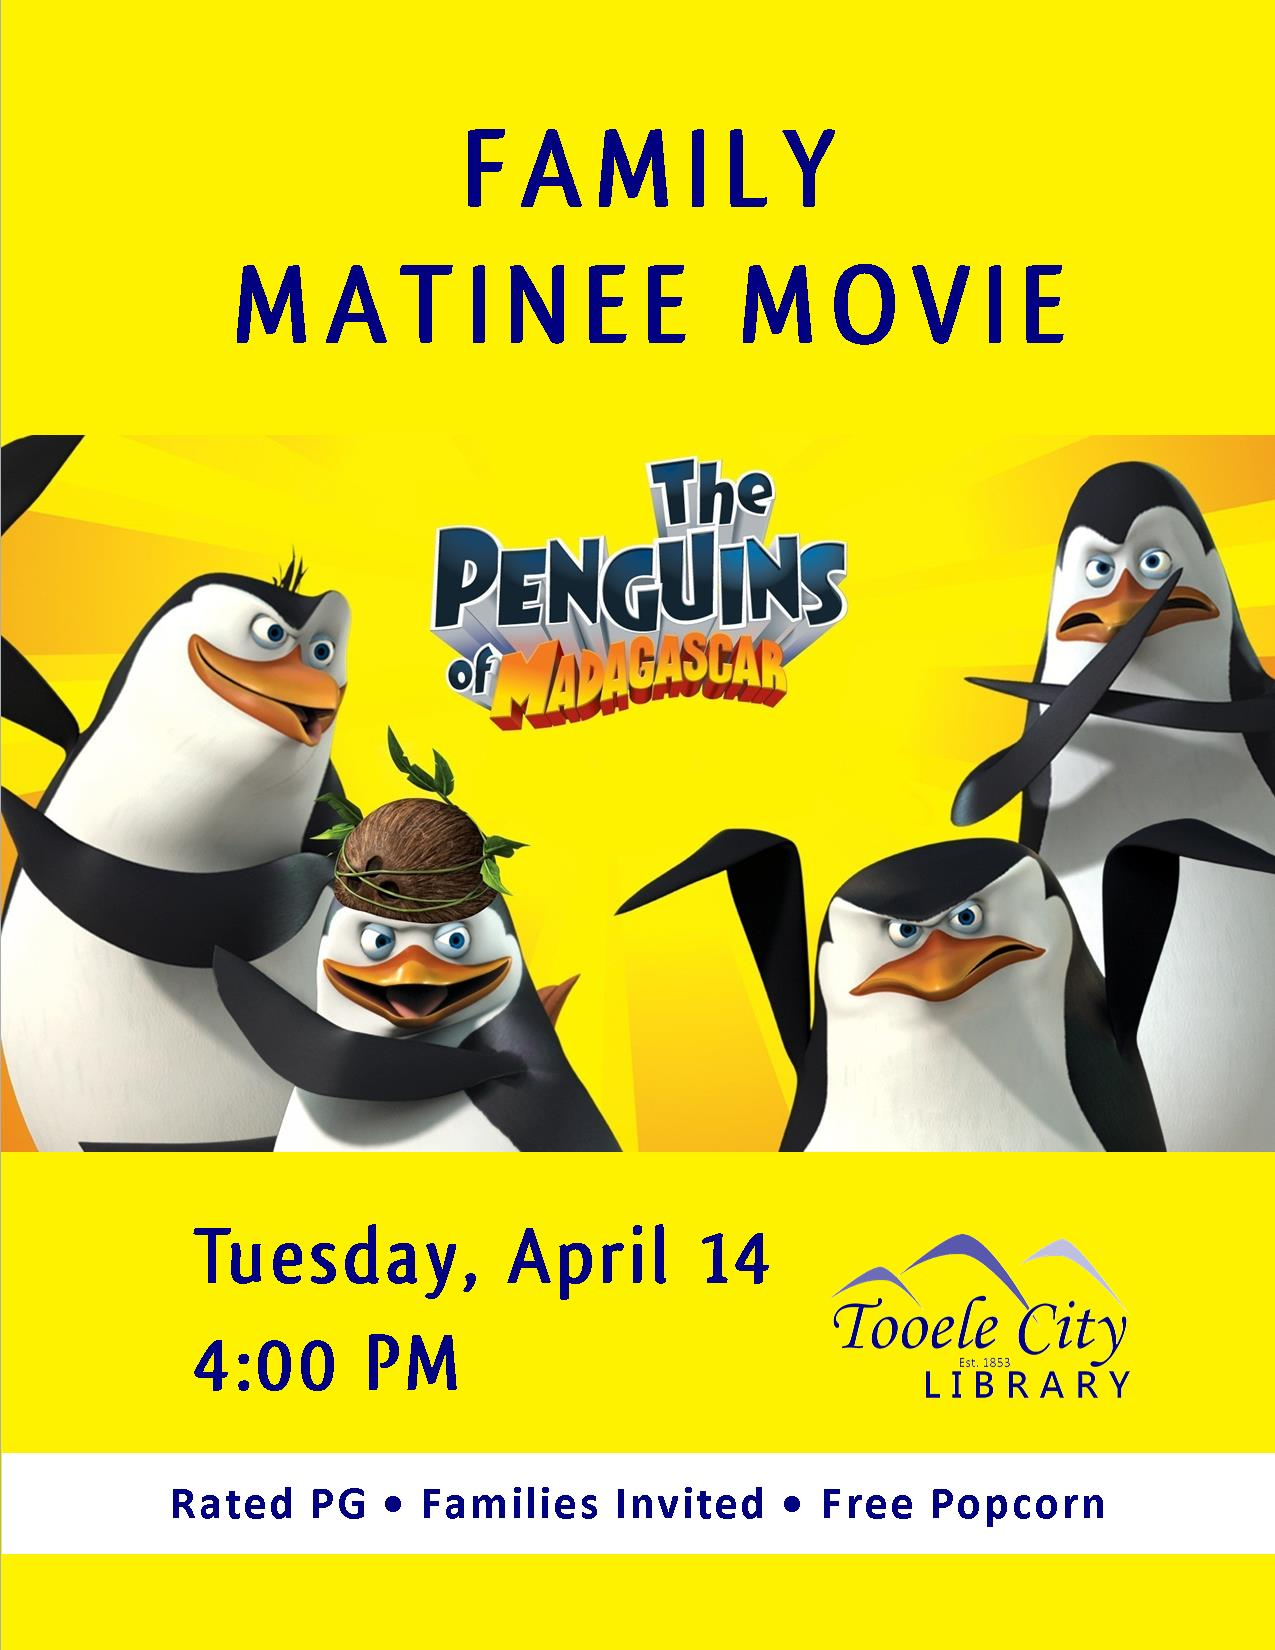 04 14 Movie Penguins Madagascar | Tooele City